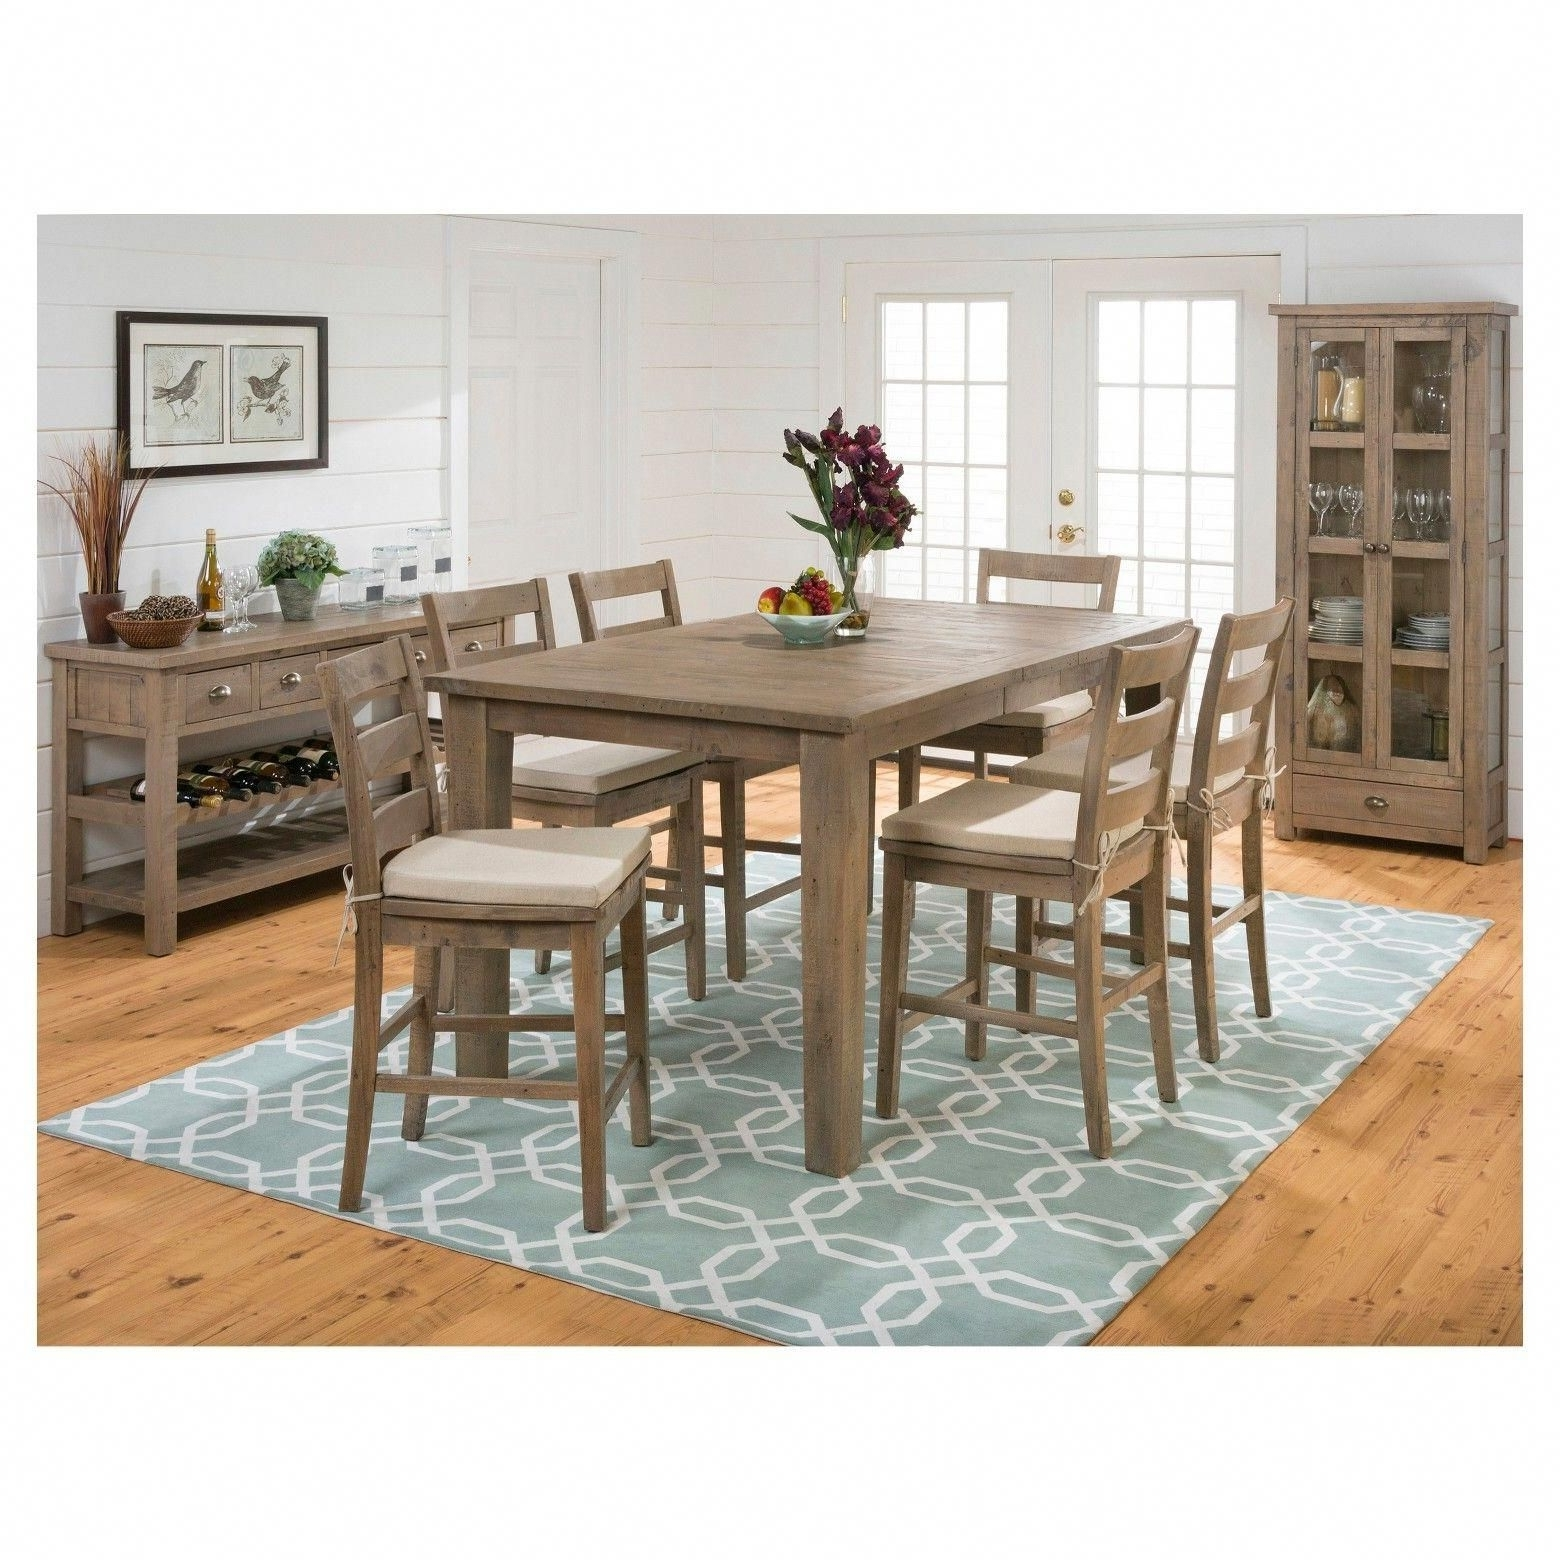 Most Recent Combining Casual Cottage Design With On Trend Distressing, Jofran's For Craftsman 9 Piece Extension Dining Sets With Uph Side Chairs (Gallery 7 of 25)